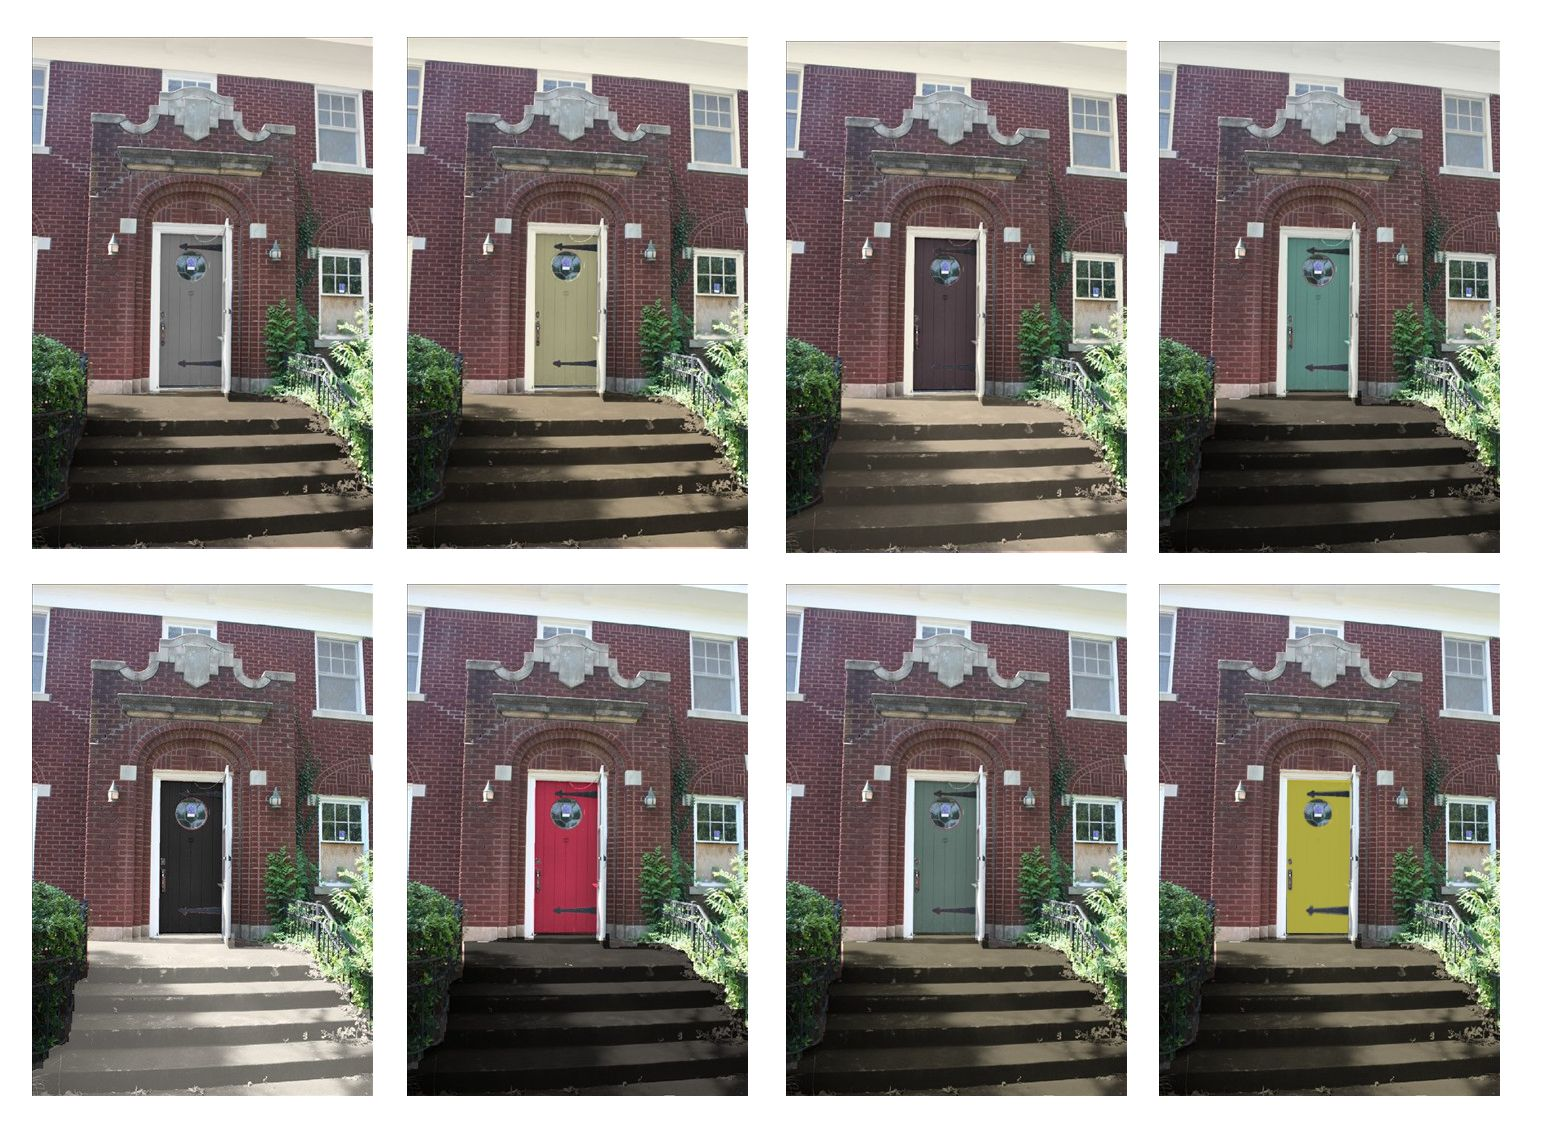 How A Door Color Can Change The Look Of An Entry Way House Pinterest Doors Bricks And